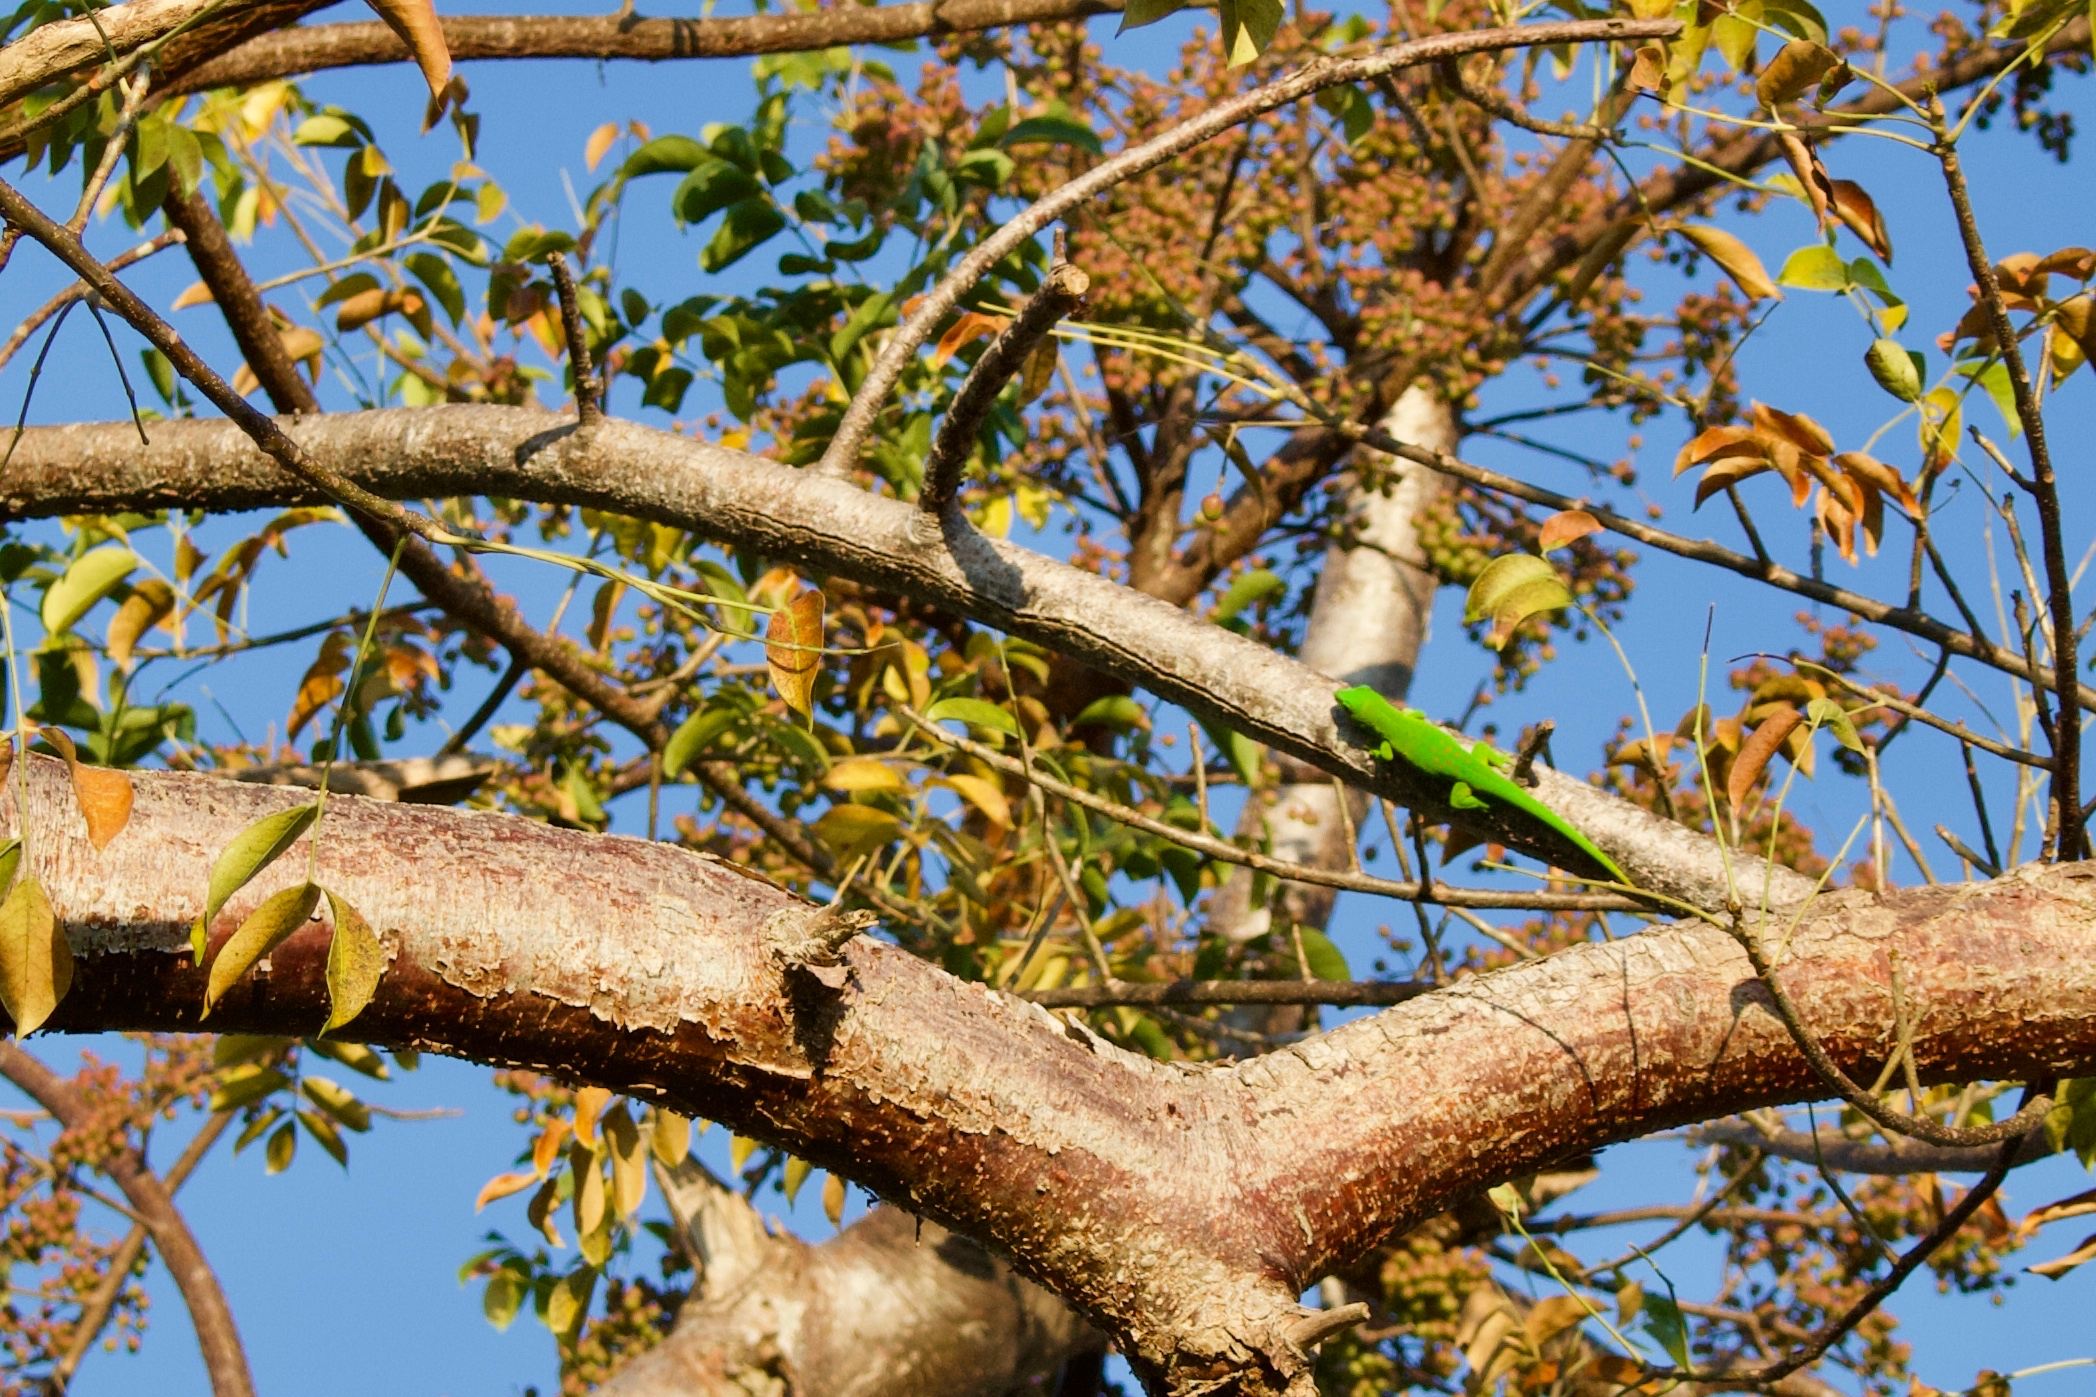 green gecko on a dull tree